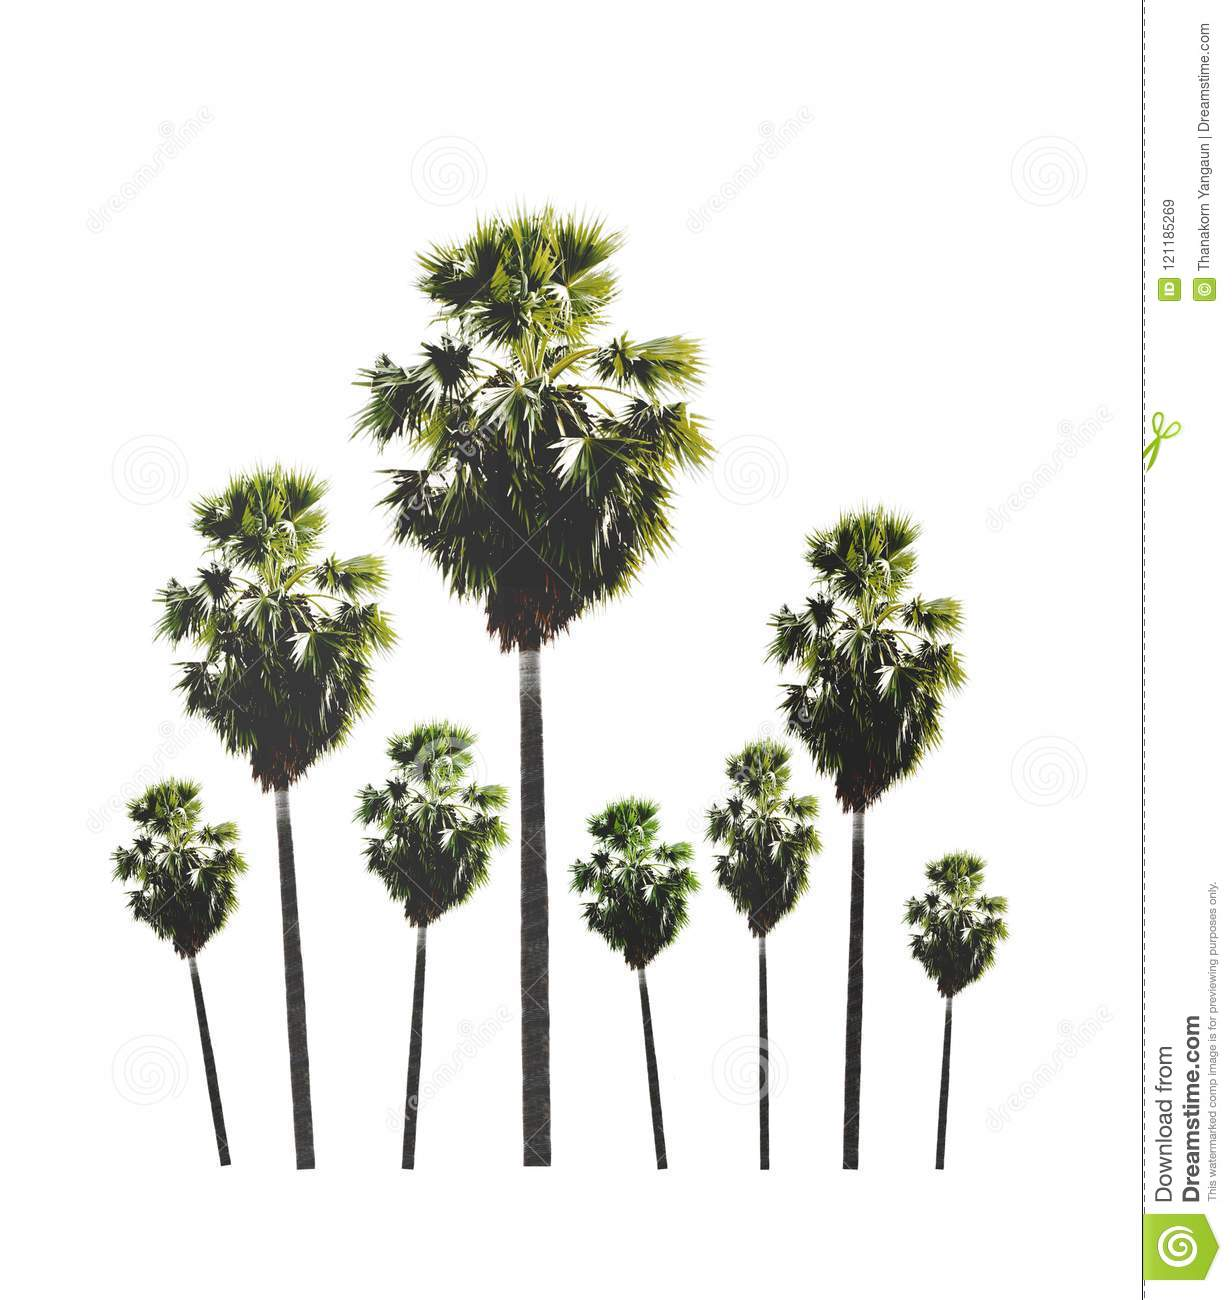 Garden of palm sugar tree isolated on white background.